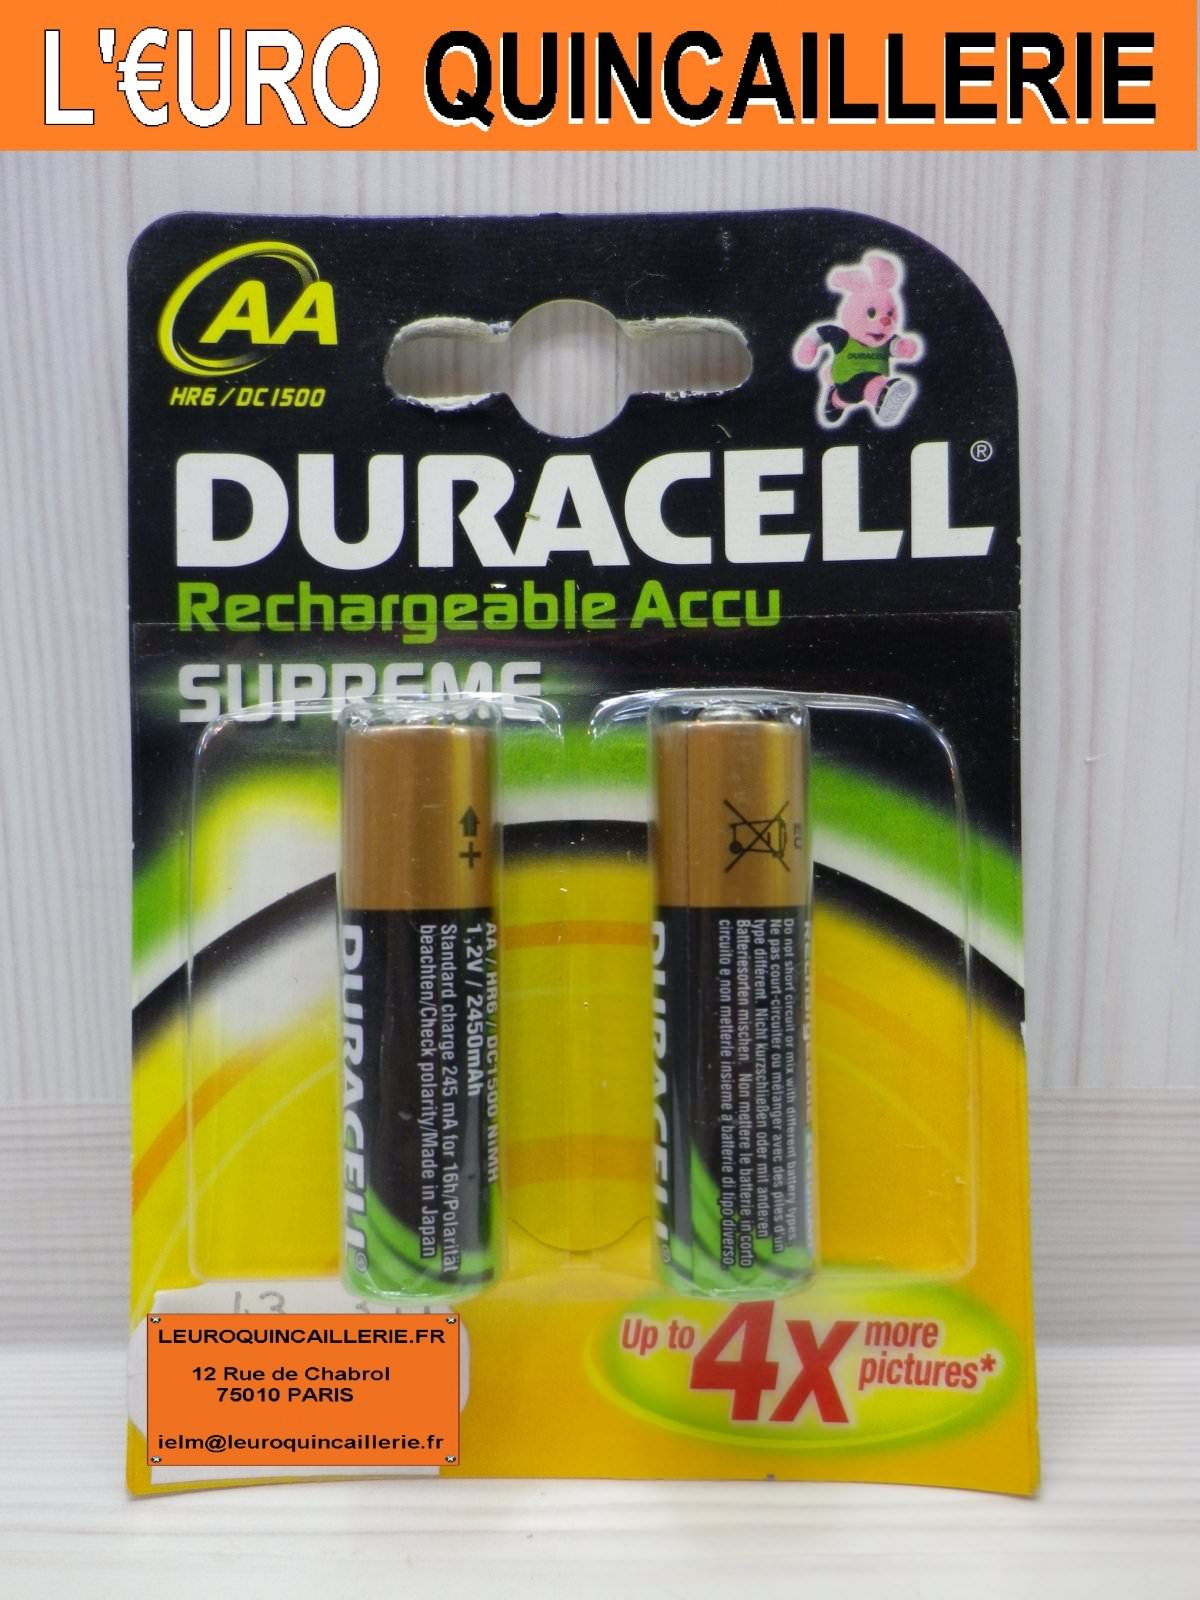 2 Piles rechargeable Duracell HR6 AA 2400mAh